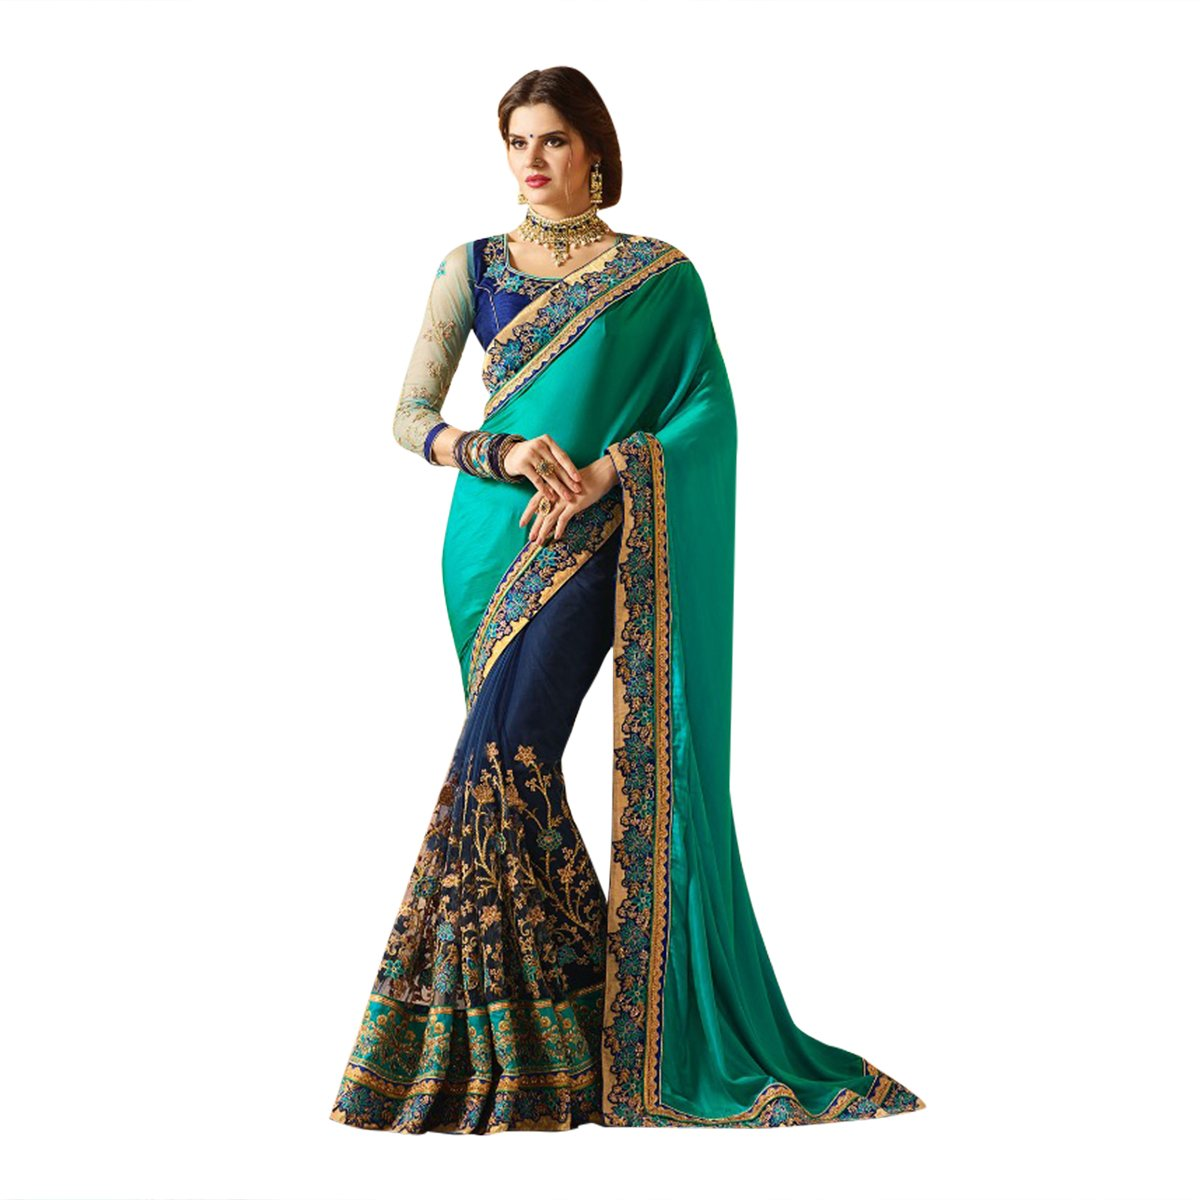 Light & Dark Blue Color Combination Bollywood Saree Sari With Latest Stylish Pattern On Blouse Just Launched Women Wedding Ceremony Party Wear Diwali Festive By Ethnic Emporium 526